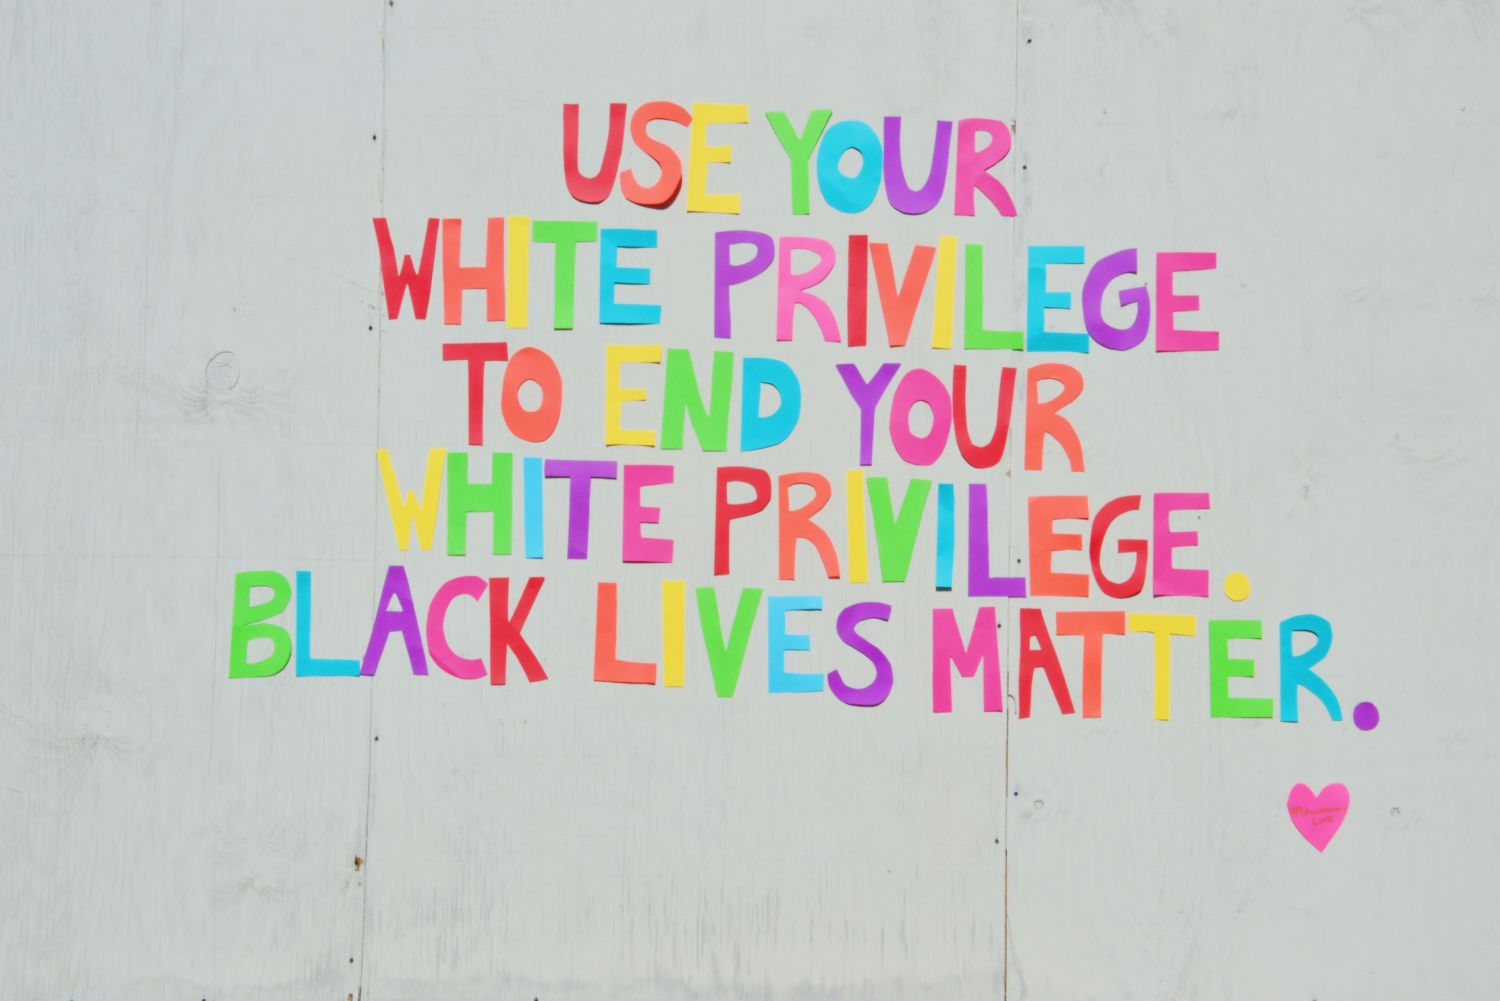 Use Your White Privilege To End Your White Privilege | Uncustomary